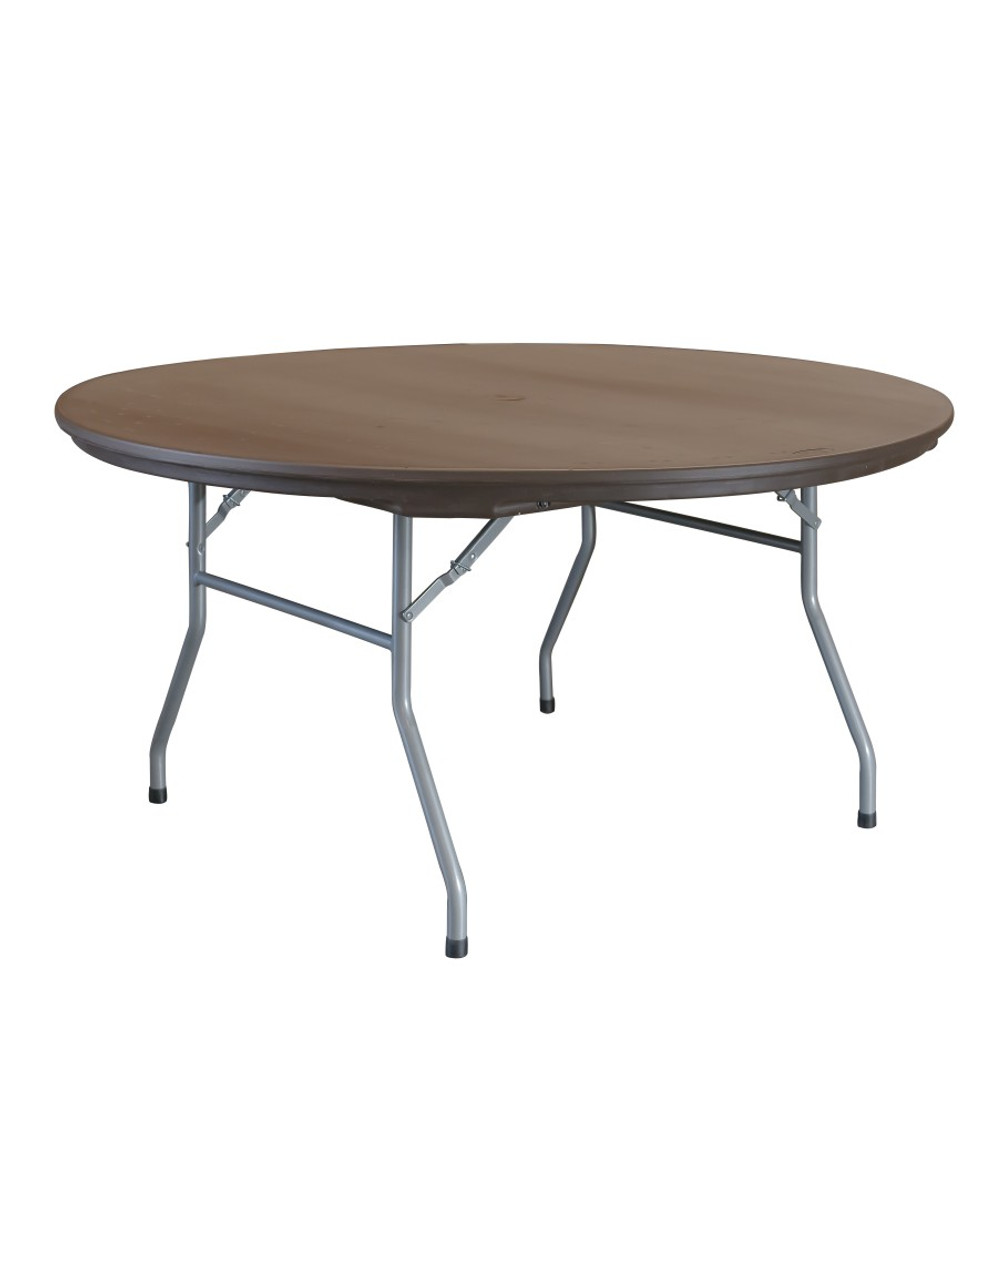 Round Plastic Tables Rhino 60